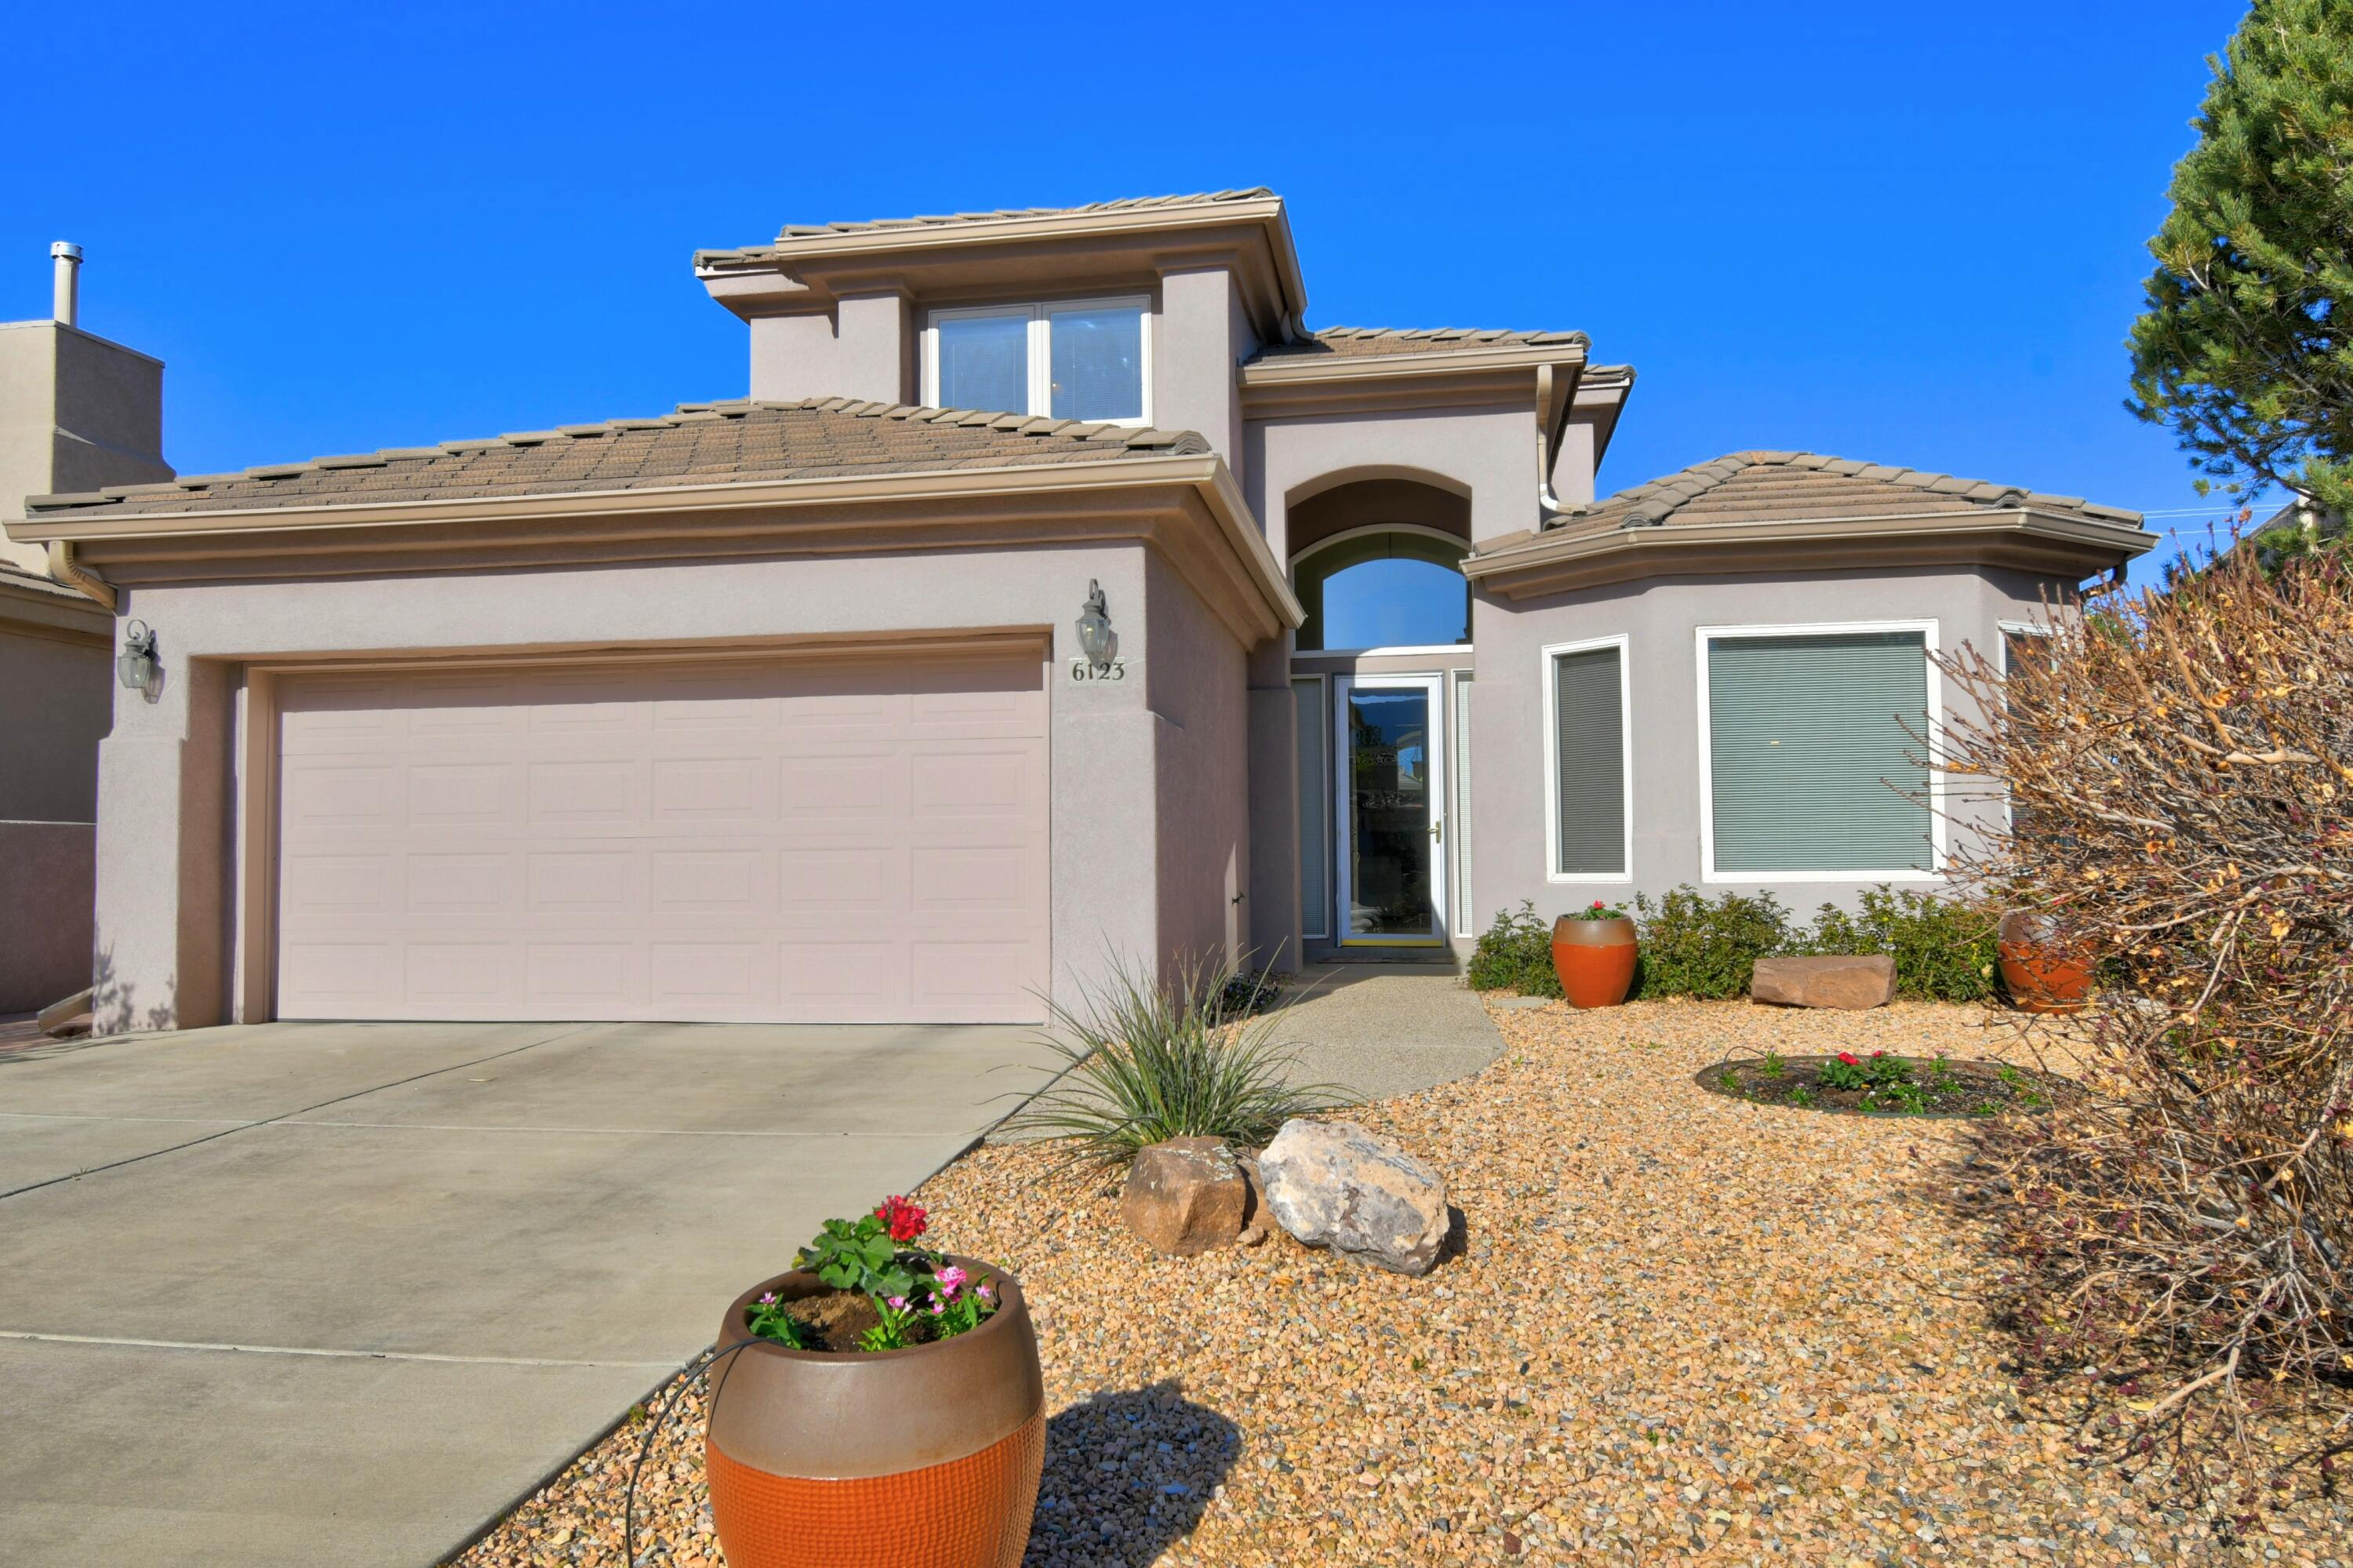 This well kept home is in the gated Trillium subdivision of High Desert with a private wonderful park. The master bedroom is on the main level with a large walk in closet.  Separate shower, tub and double sinks in the master bath.  Kitchen boasts granite counter tops, fabulous mountain views, a large eating area and custom cabinets.  Radiant floor heat downstairs and upstairs! Soaring ceilings in the living room and entry make this home feel very spacious. Easy care southwestern landscaping, a great garden and areas for your flowers!